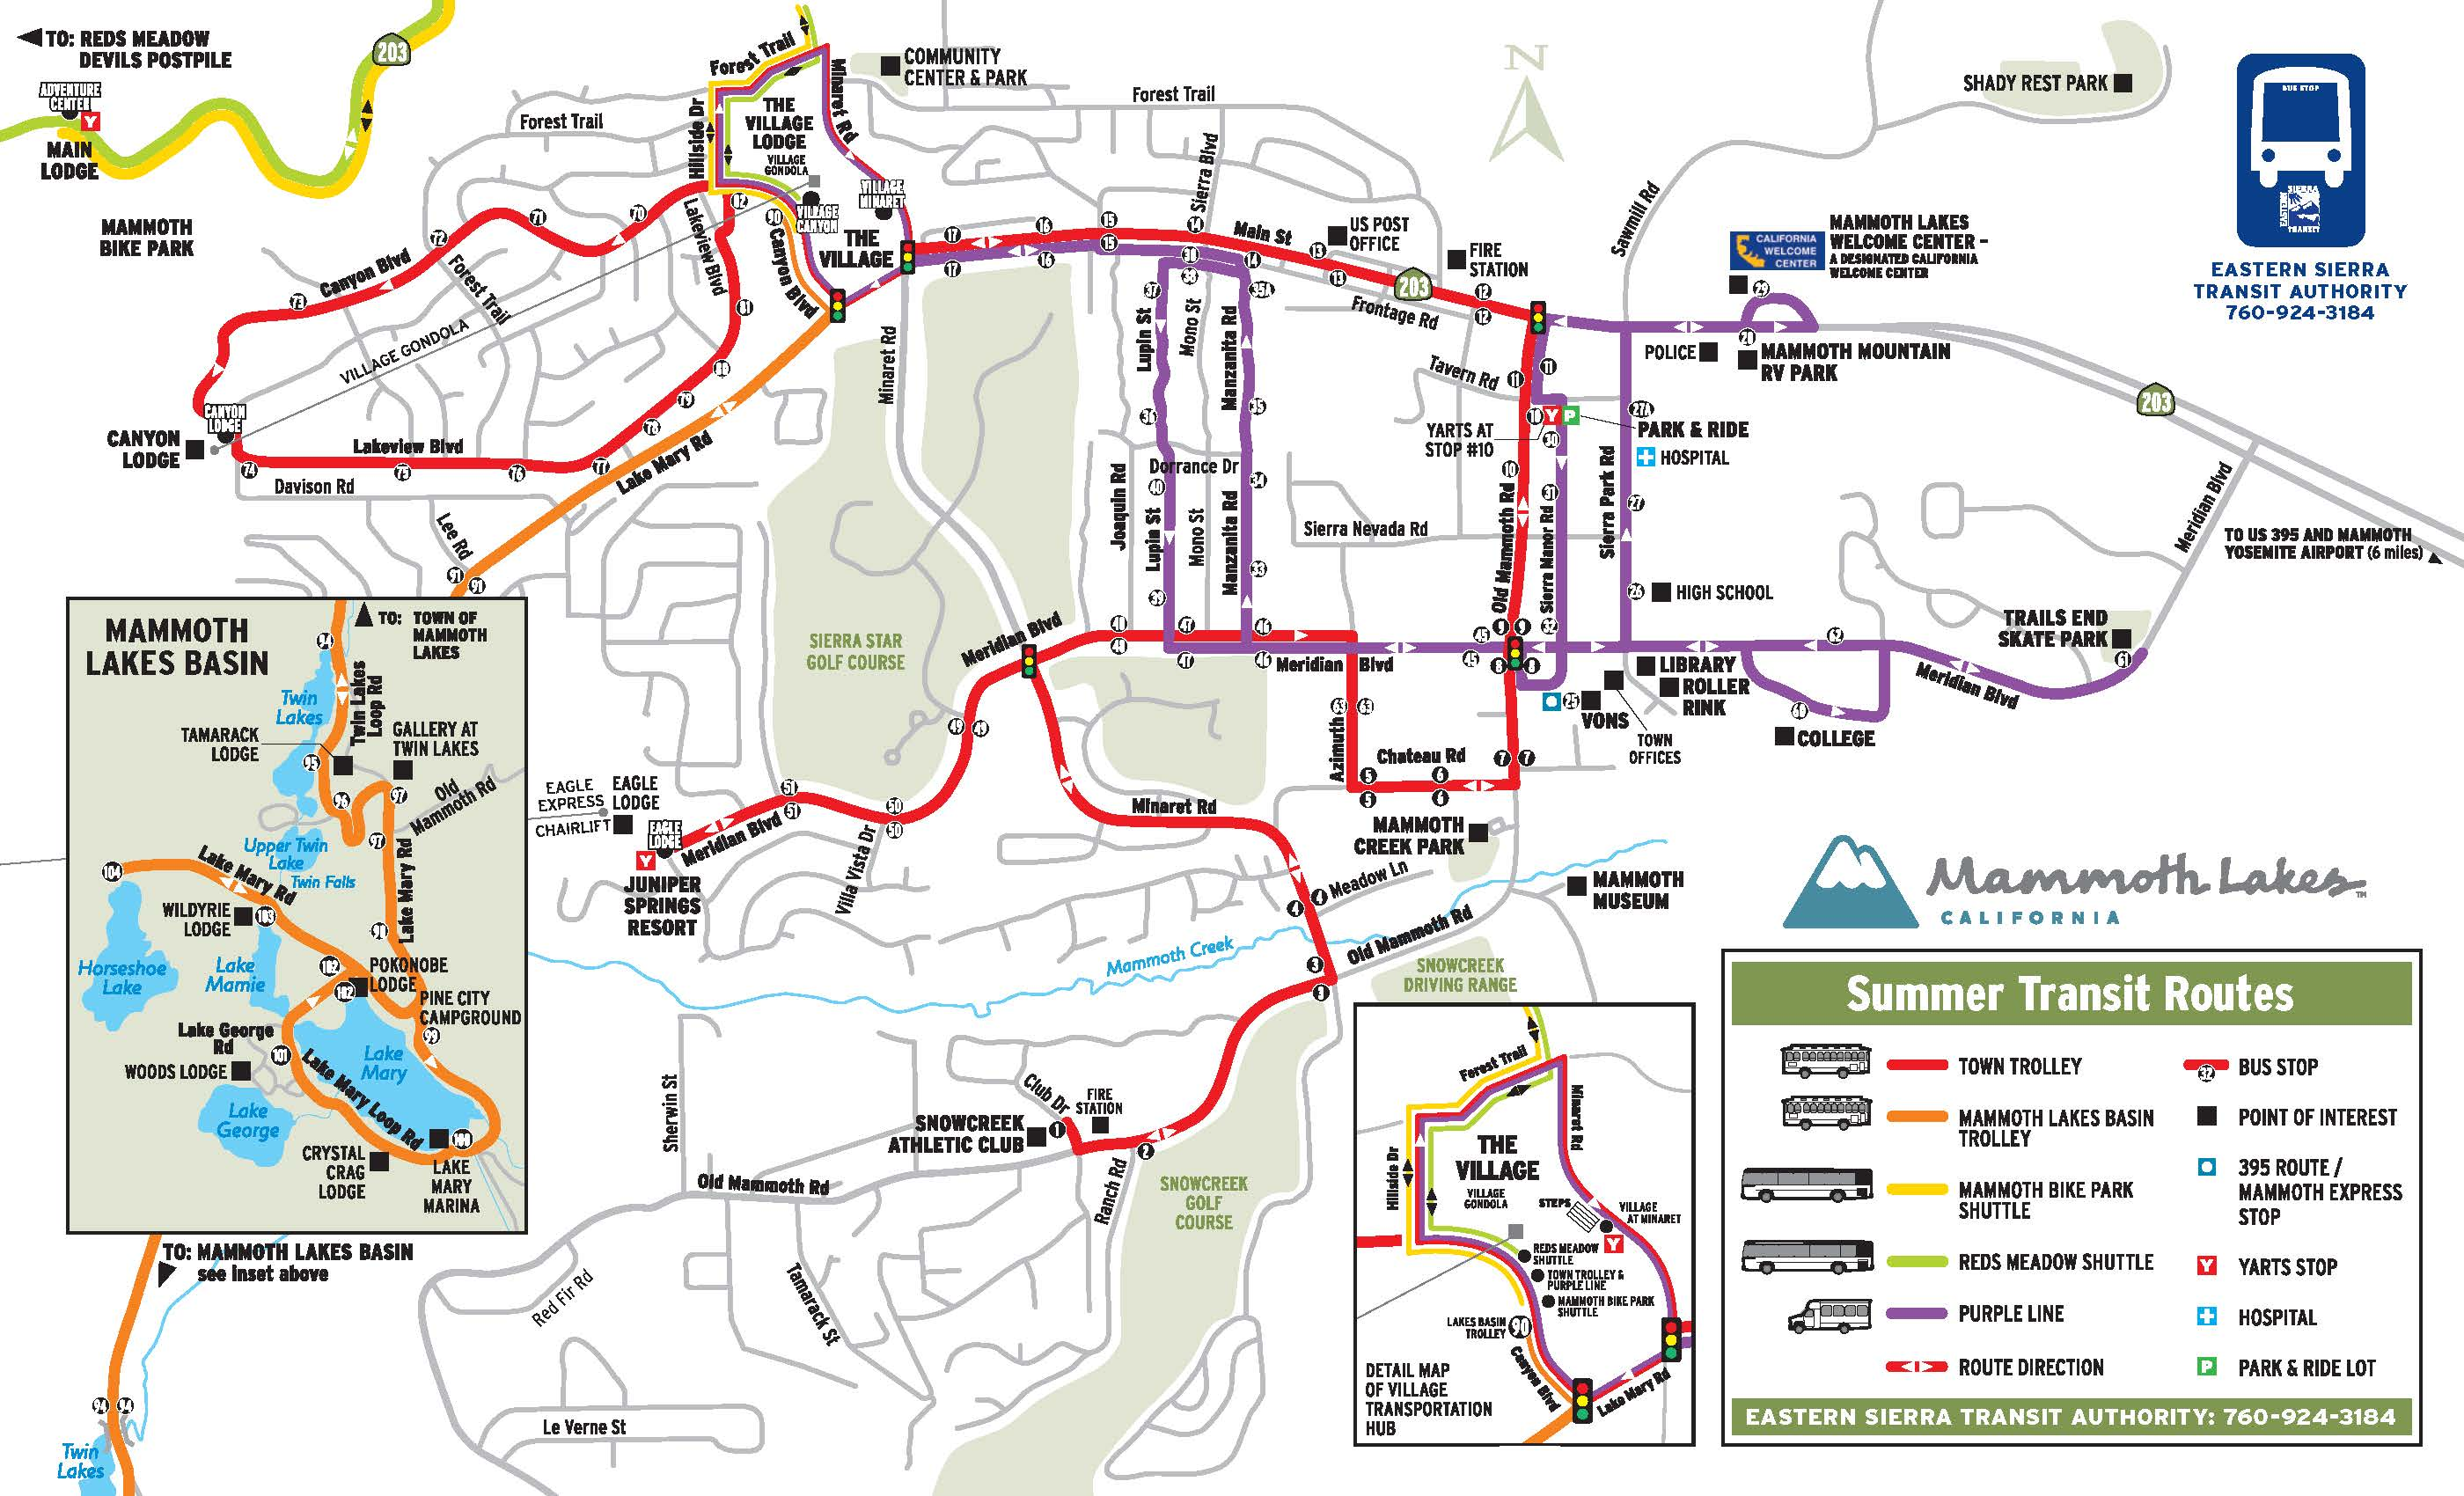 Free Mountain Shuttle Service | See Routes | Mammoth Mountain on massachusetts bay transit authority map, central of georgia map, massachusetts bay transportation authority map, go street map, new jersey transit map, toronto ttc map, subway transit map, go train mississauga map, norfolk southern map, sound transit map, metro transit map, toronto streetcar system map, peterborough transit map, calgary transit map, vaughan transit map, toronto transit map, nj transit map, metropolitan atlanta rapid transit authority map, dallas area rapid transit map, bay area rapid transit map,